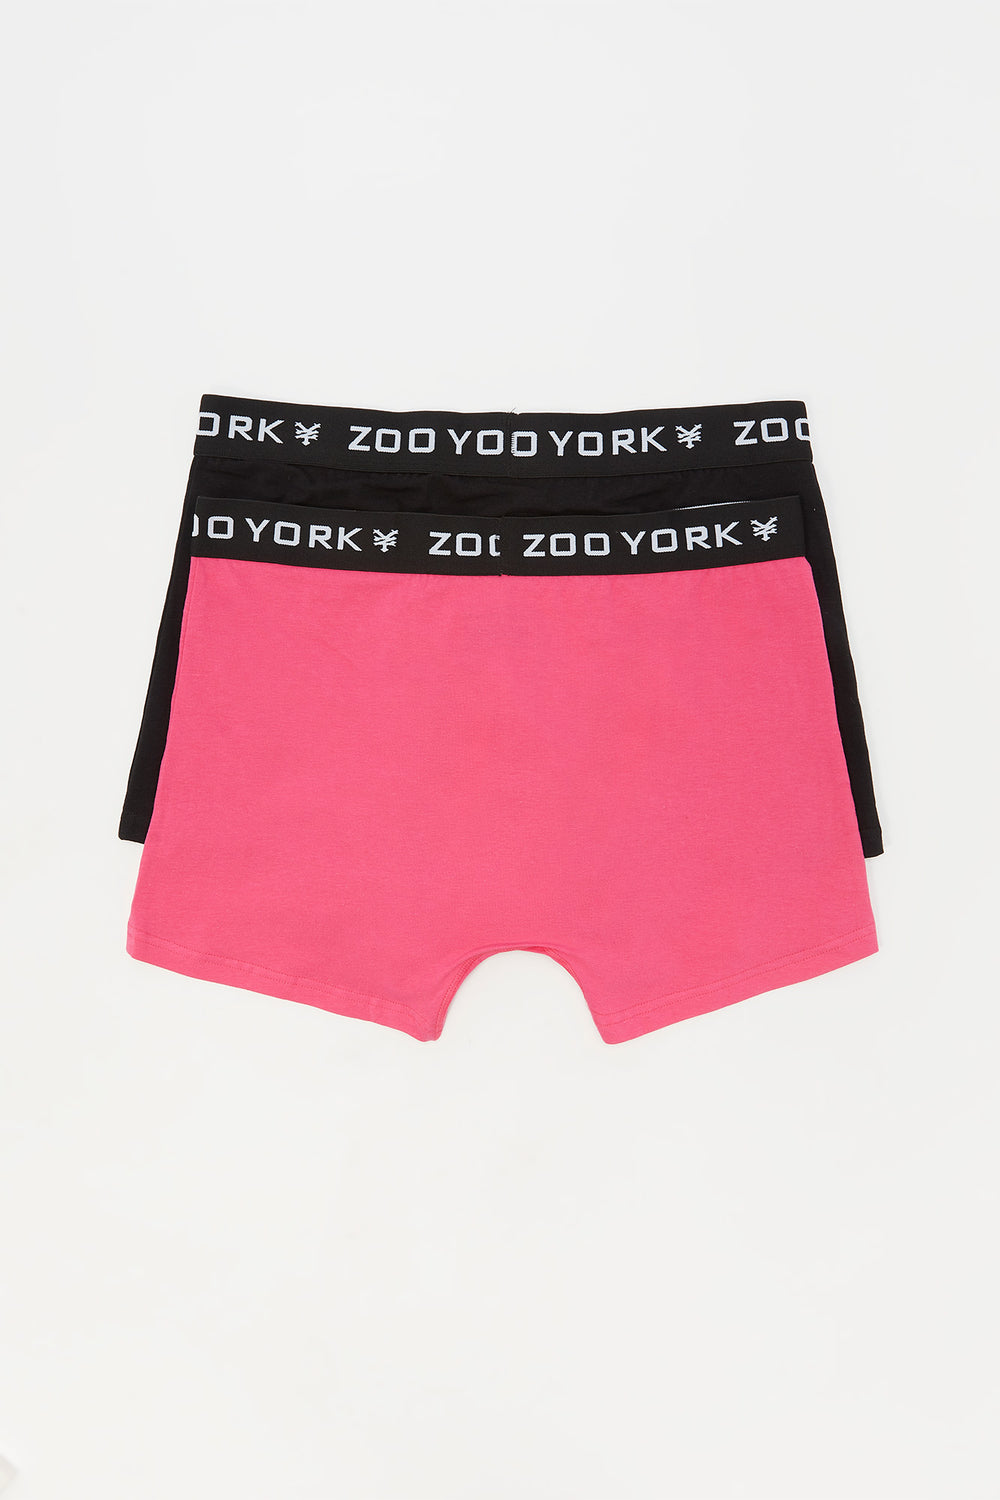 Zoo York Mens 2-Pack Cotton Boxer Briefs Pink